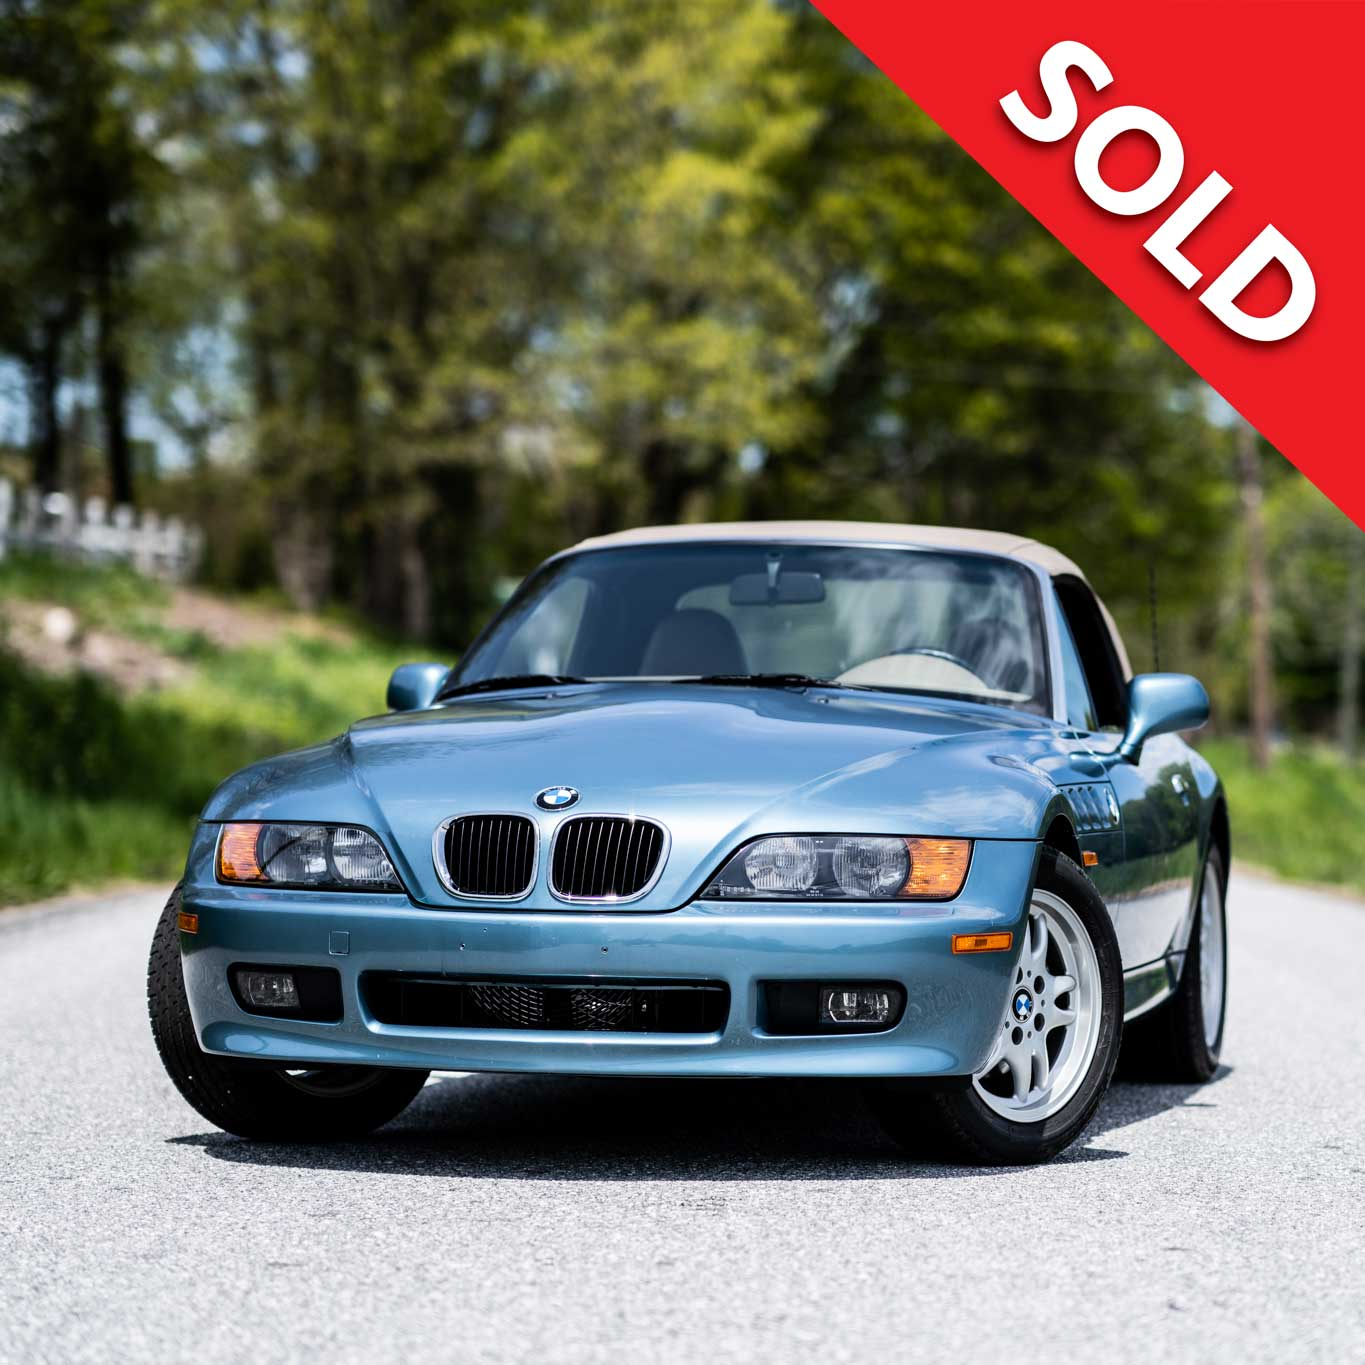 Sold – 7,600 miles from new.  James Bond edition.  BMW Z3 Roadster.